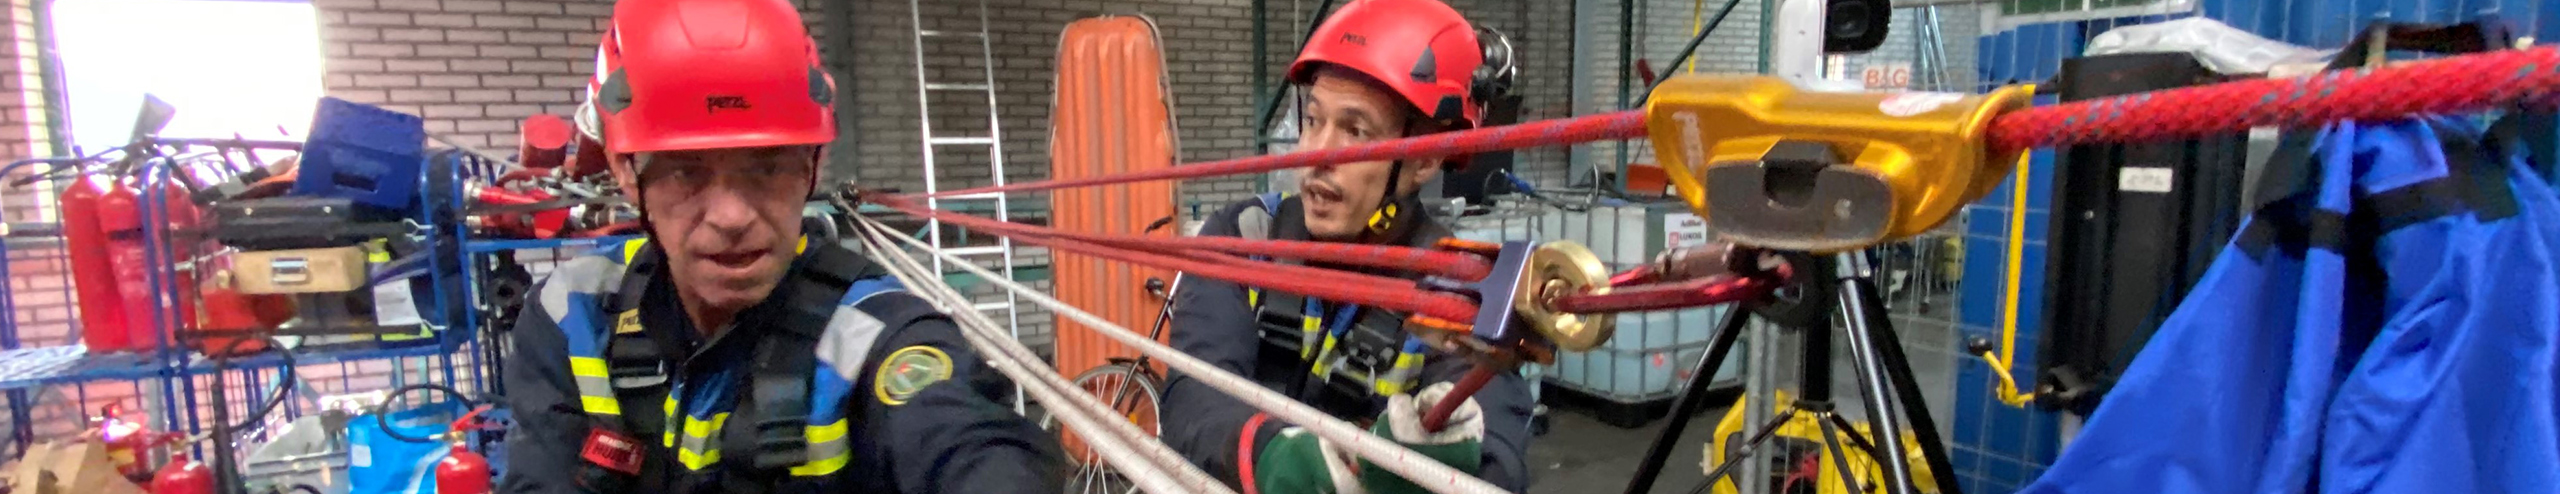 Rescue Training Brandwachthuren Rope Access